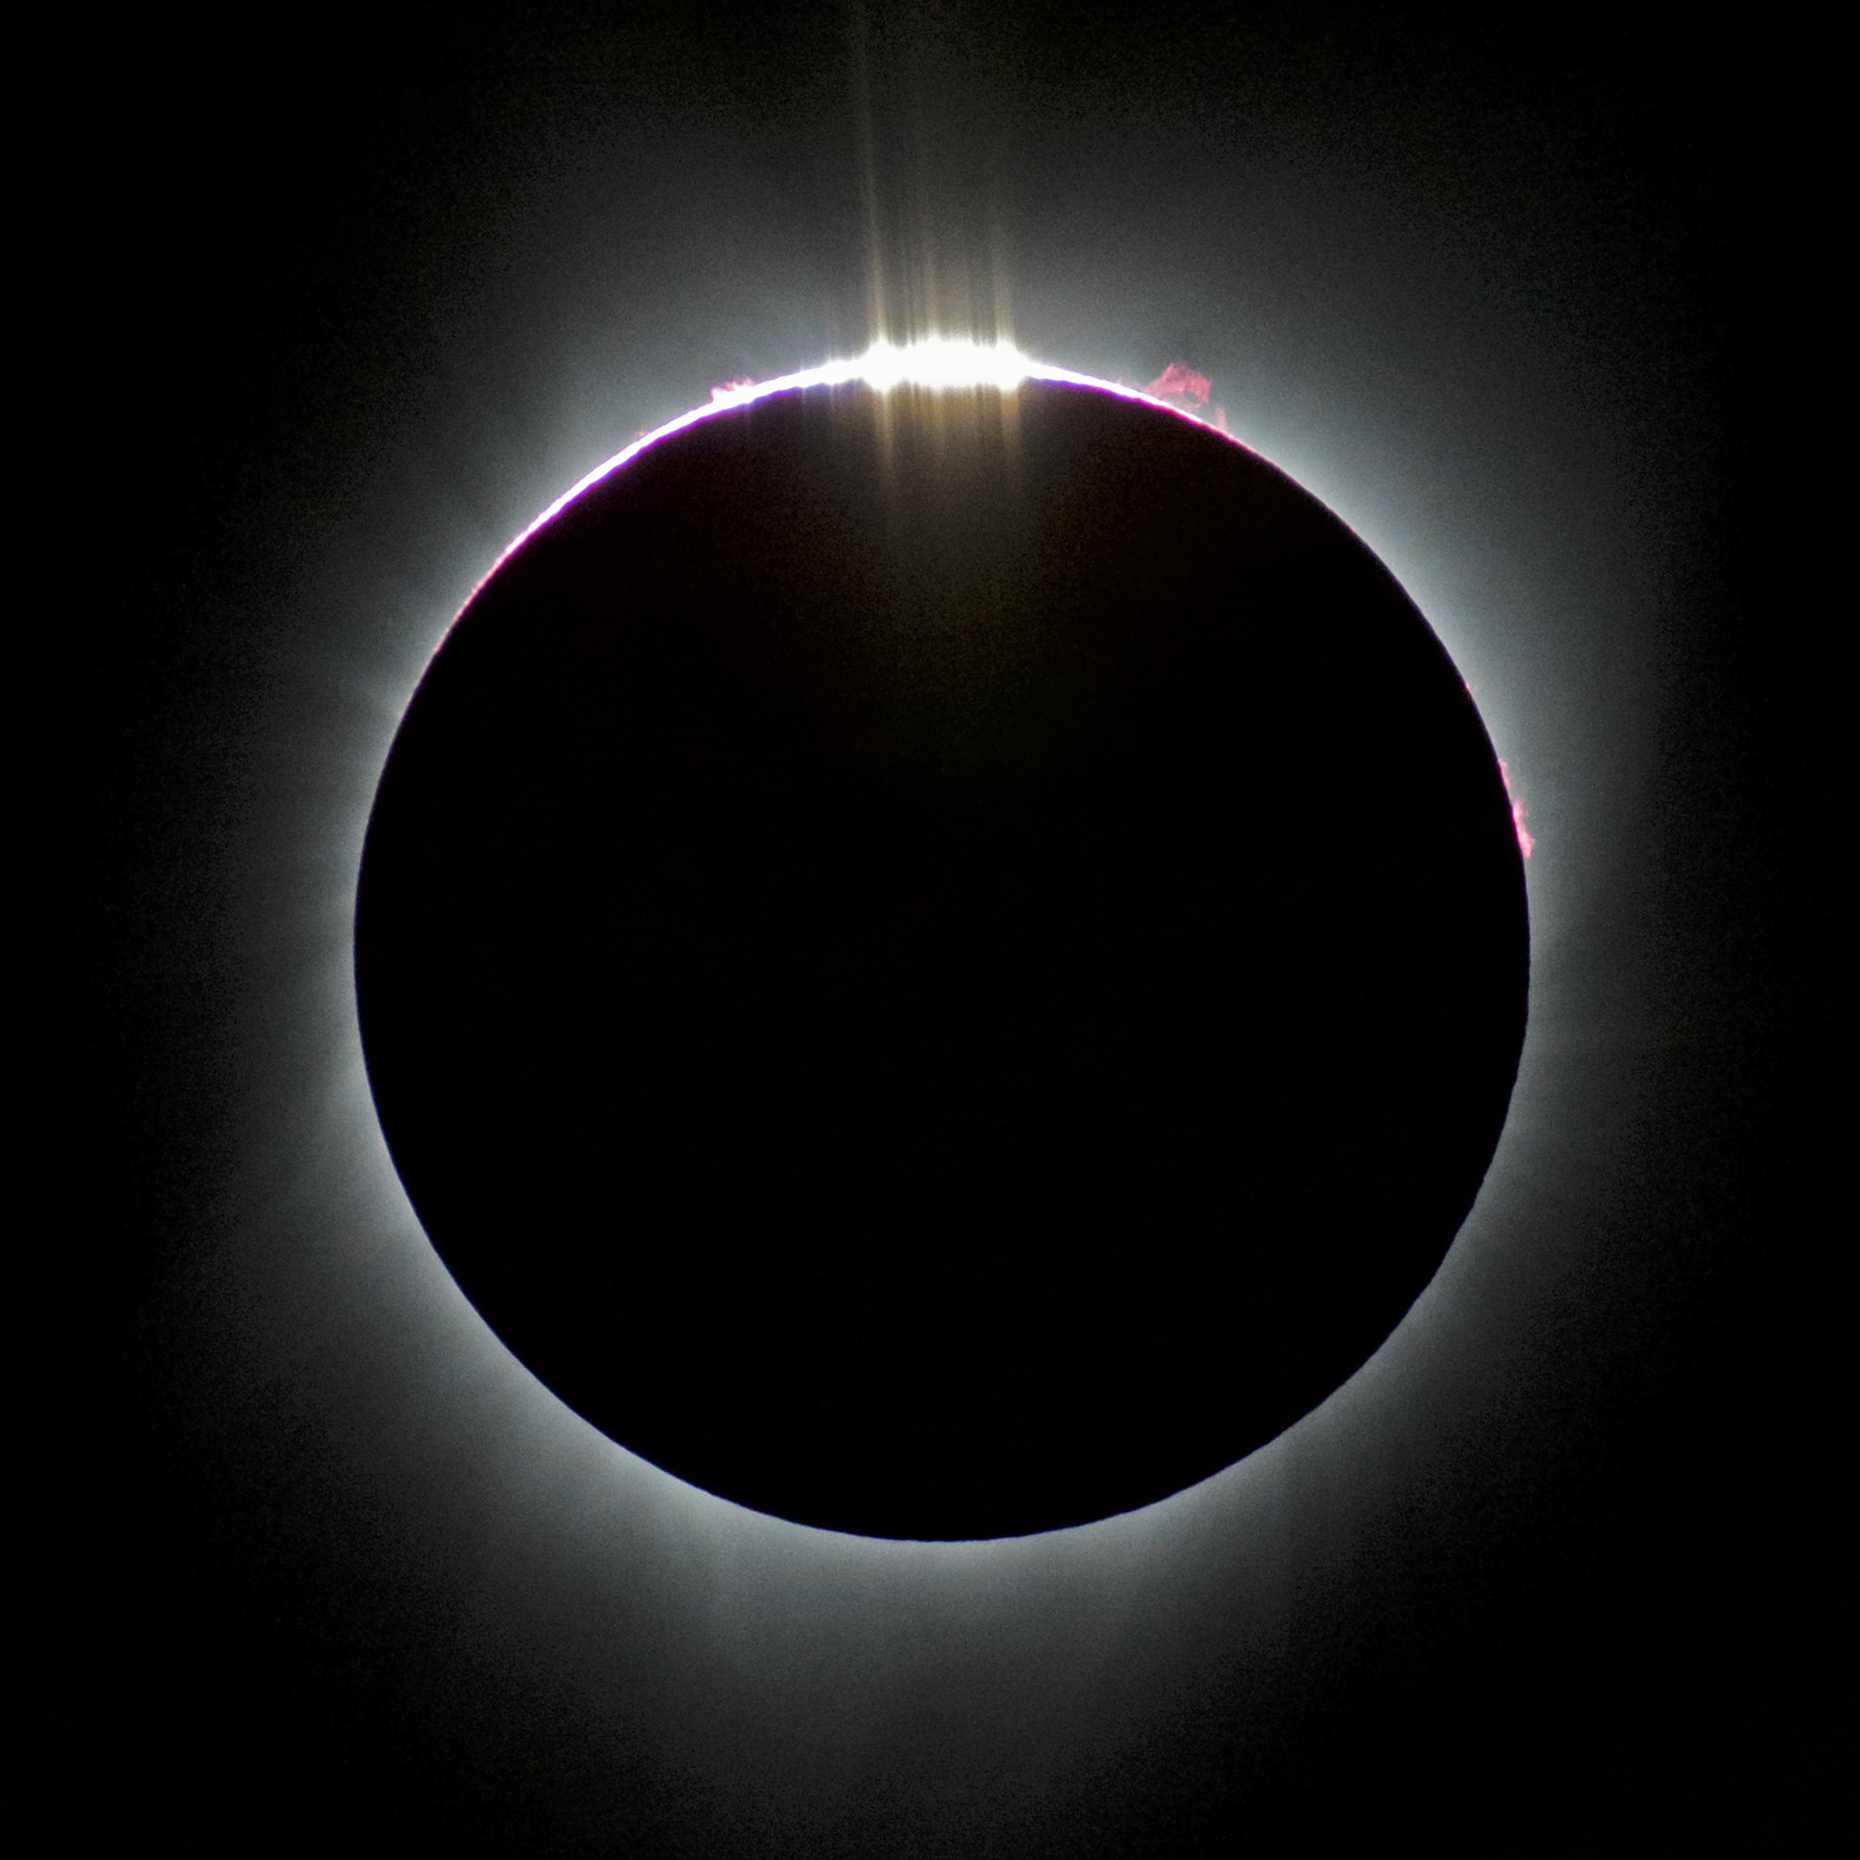 eclipse_baily_prominence_redder